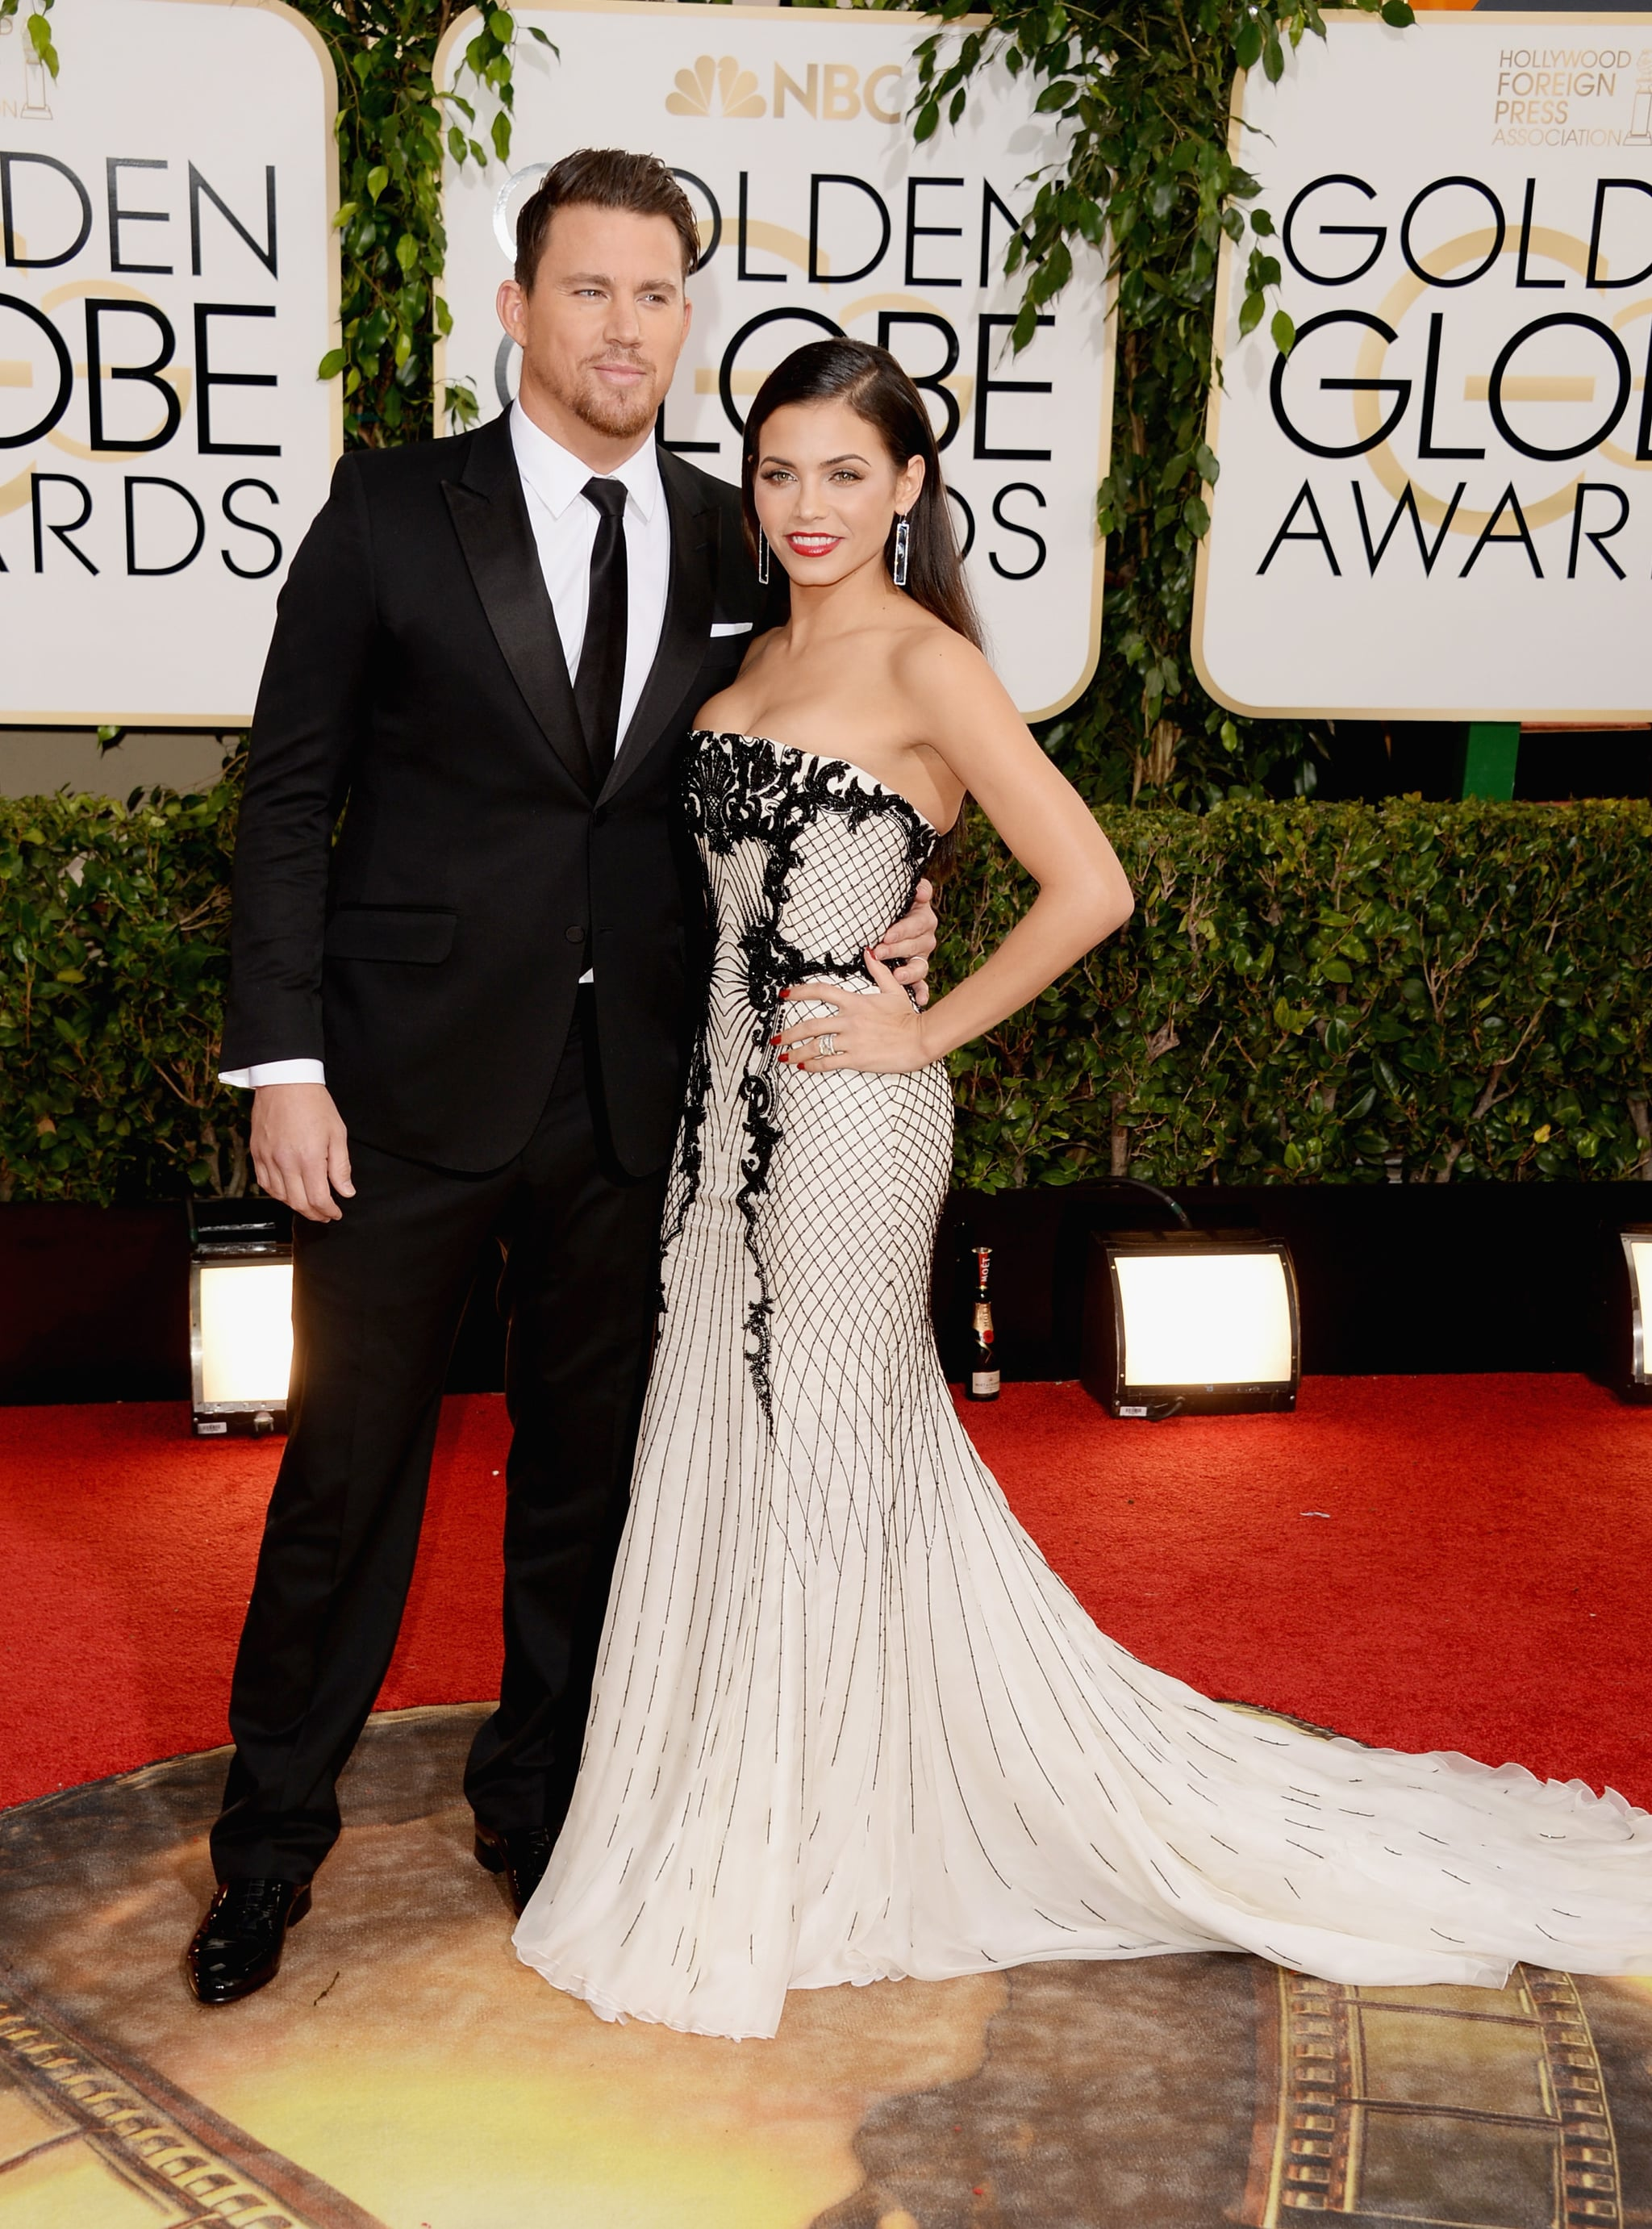 Channing Tatum and Jenna Dewan stepped out together for the event.